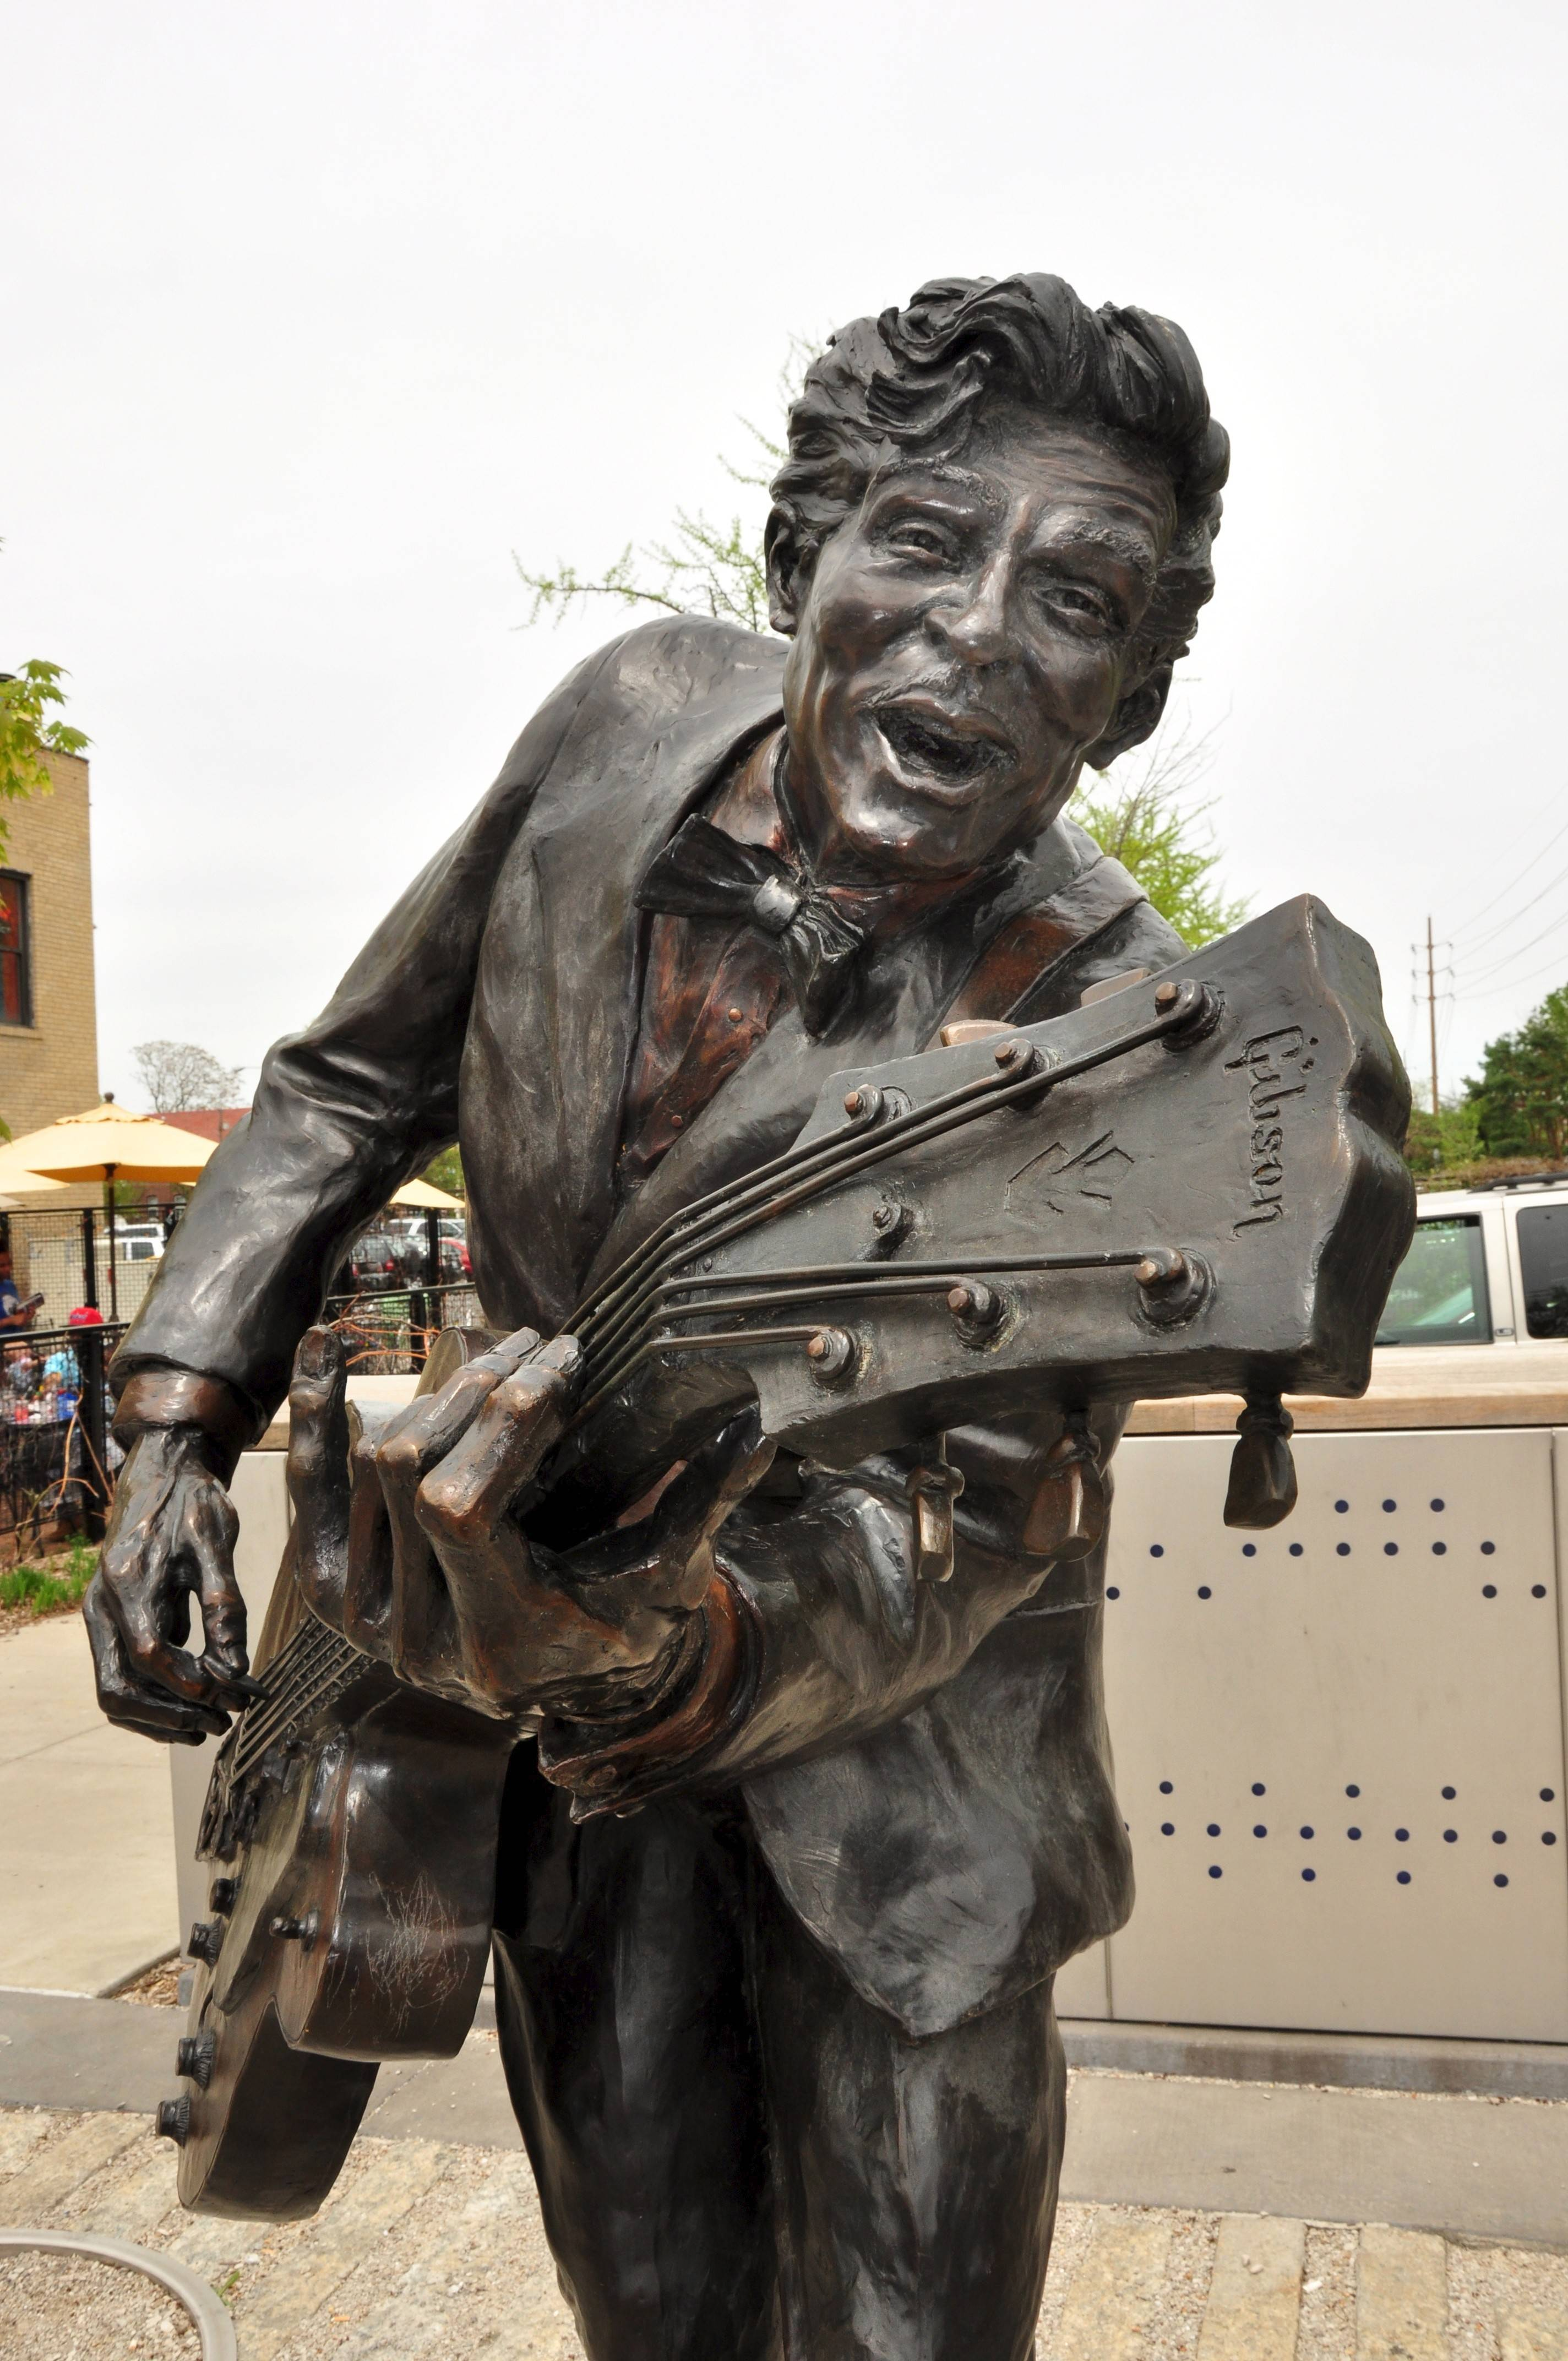 A statue on Delmar Boulevard honors Chuck Berry, the father of rock 'n' roll.